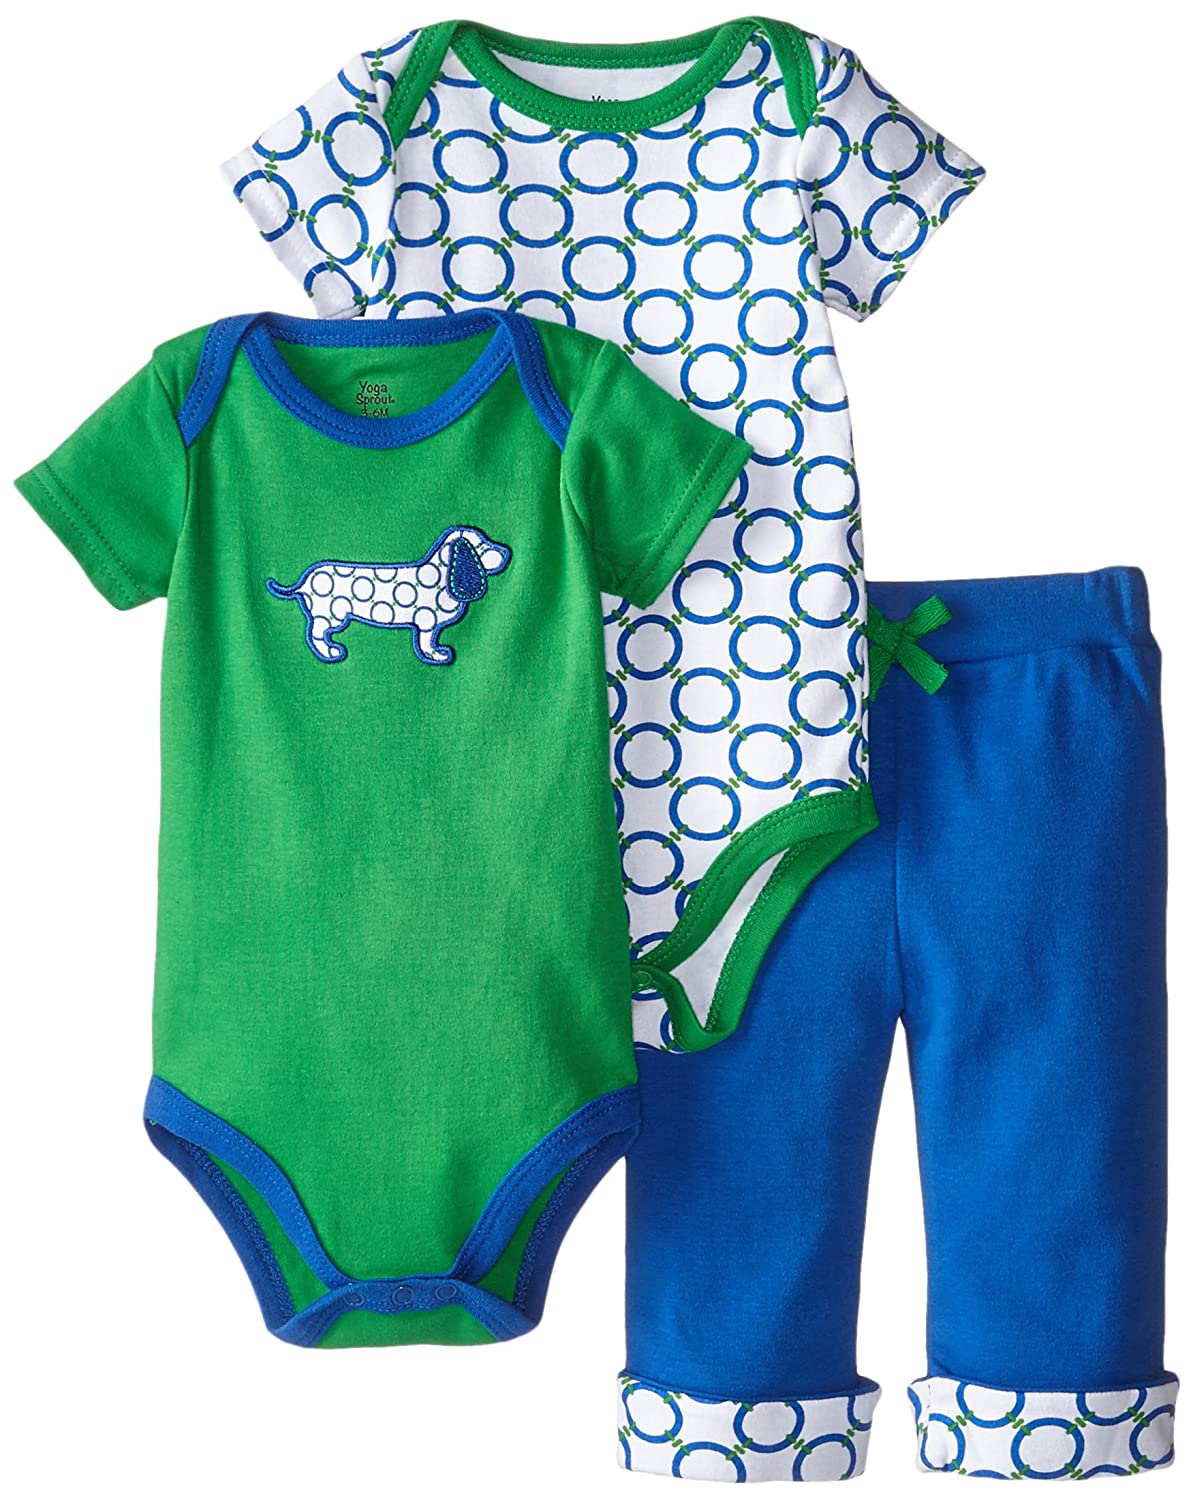 Yoga Sprout Unisex-Baby Baby Bodysuit and Pant 3 Piece Set 90151